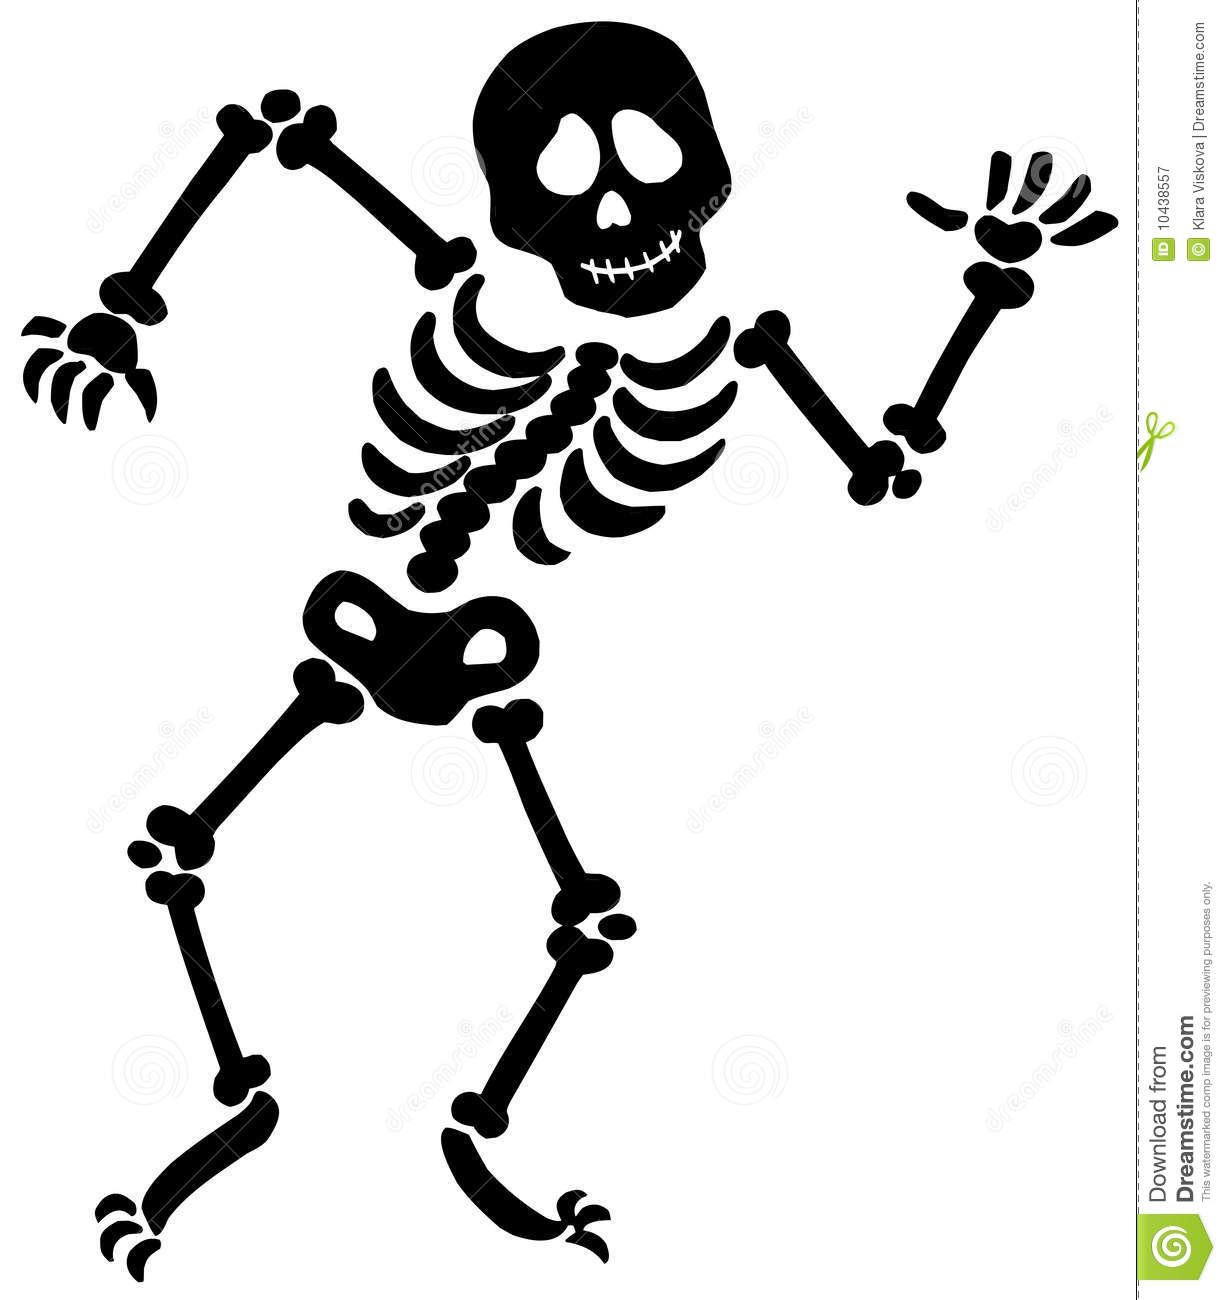 Dancing Skeleton Silhouette Royalty Free Stock Photography Image 10438557